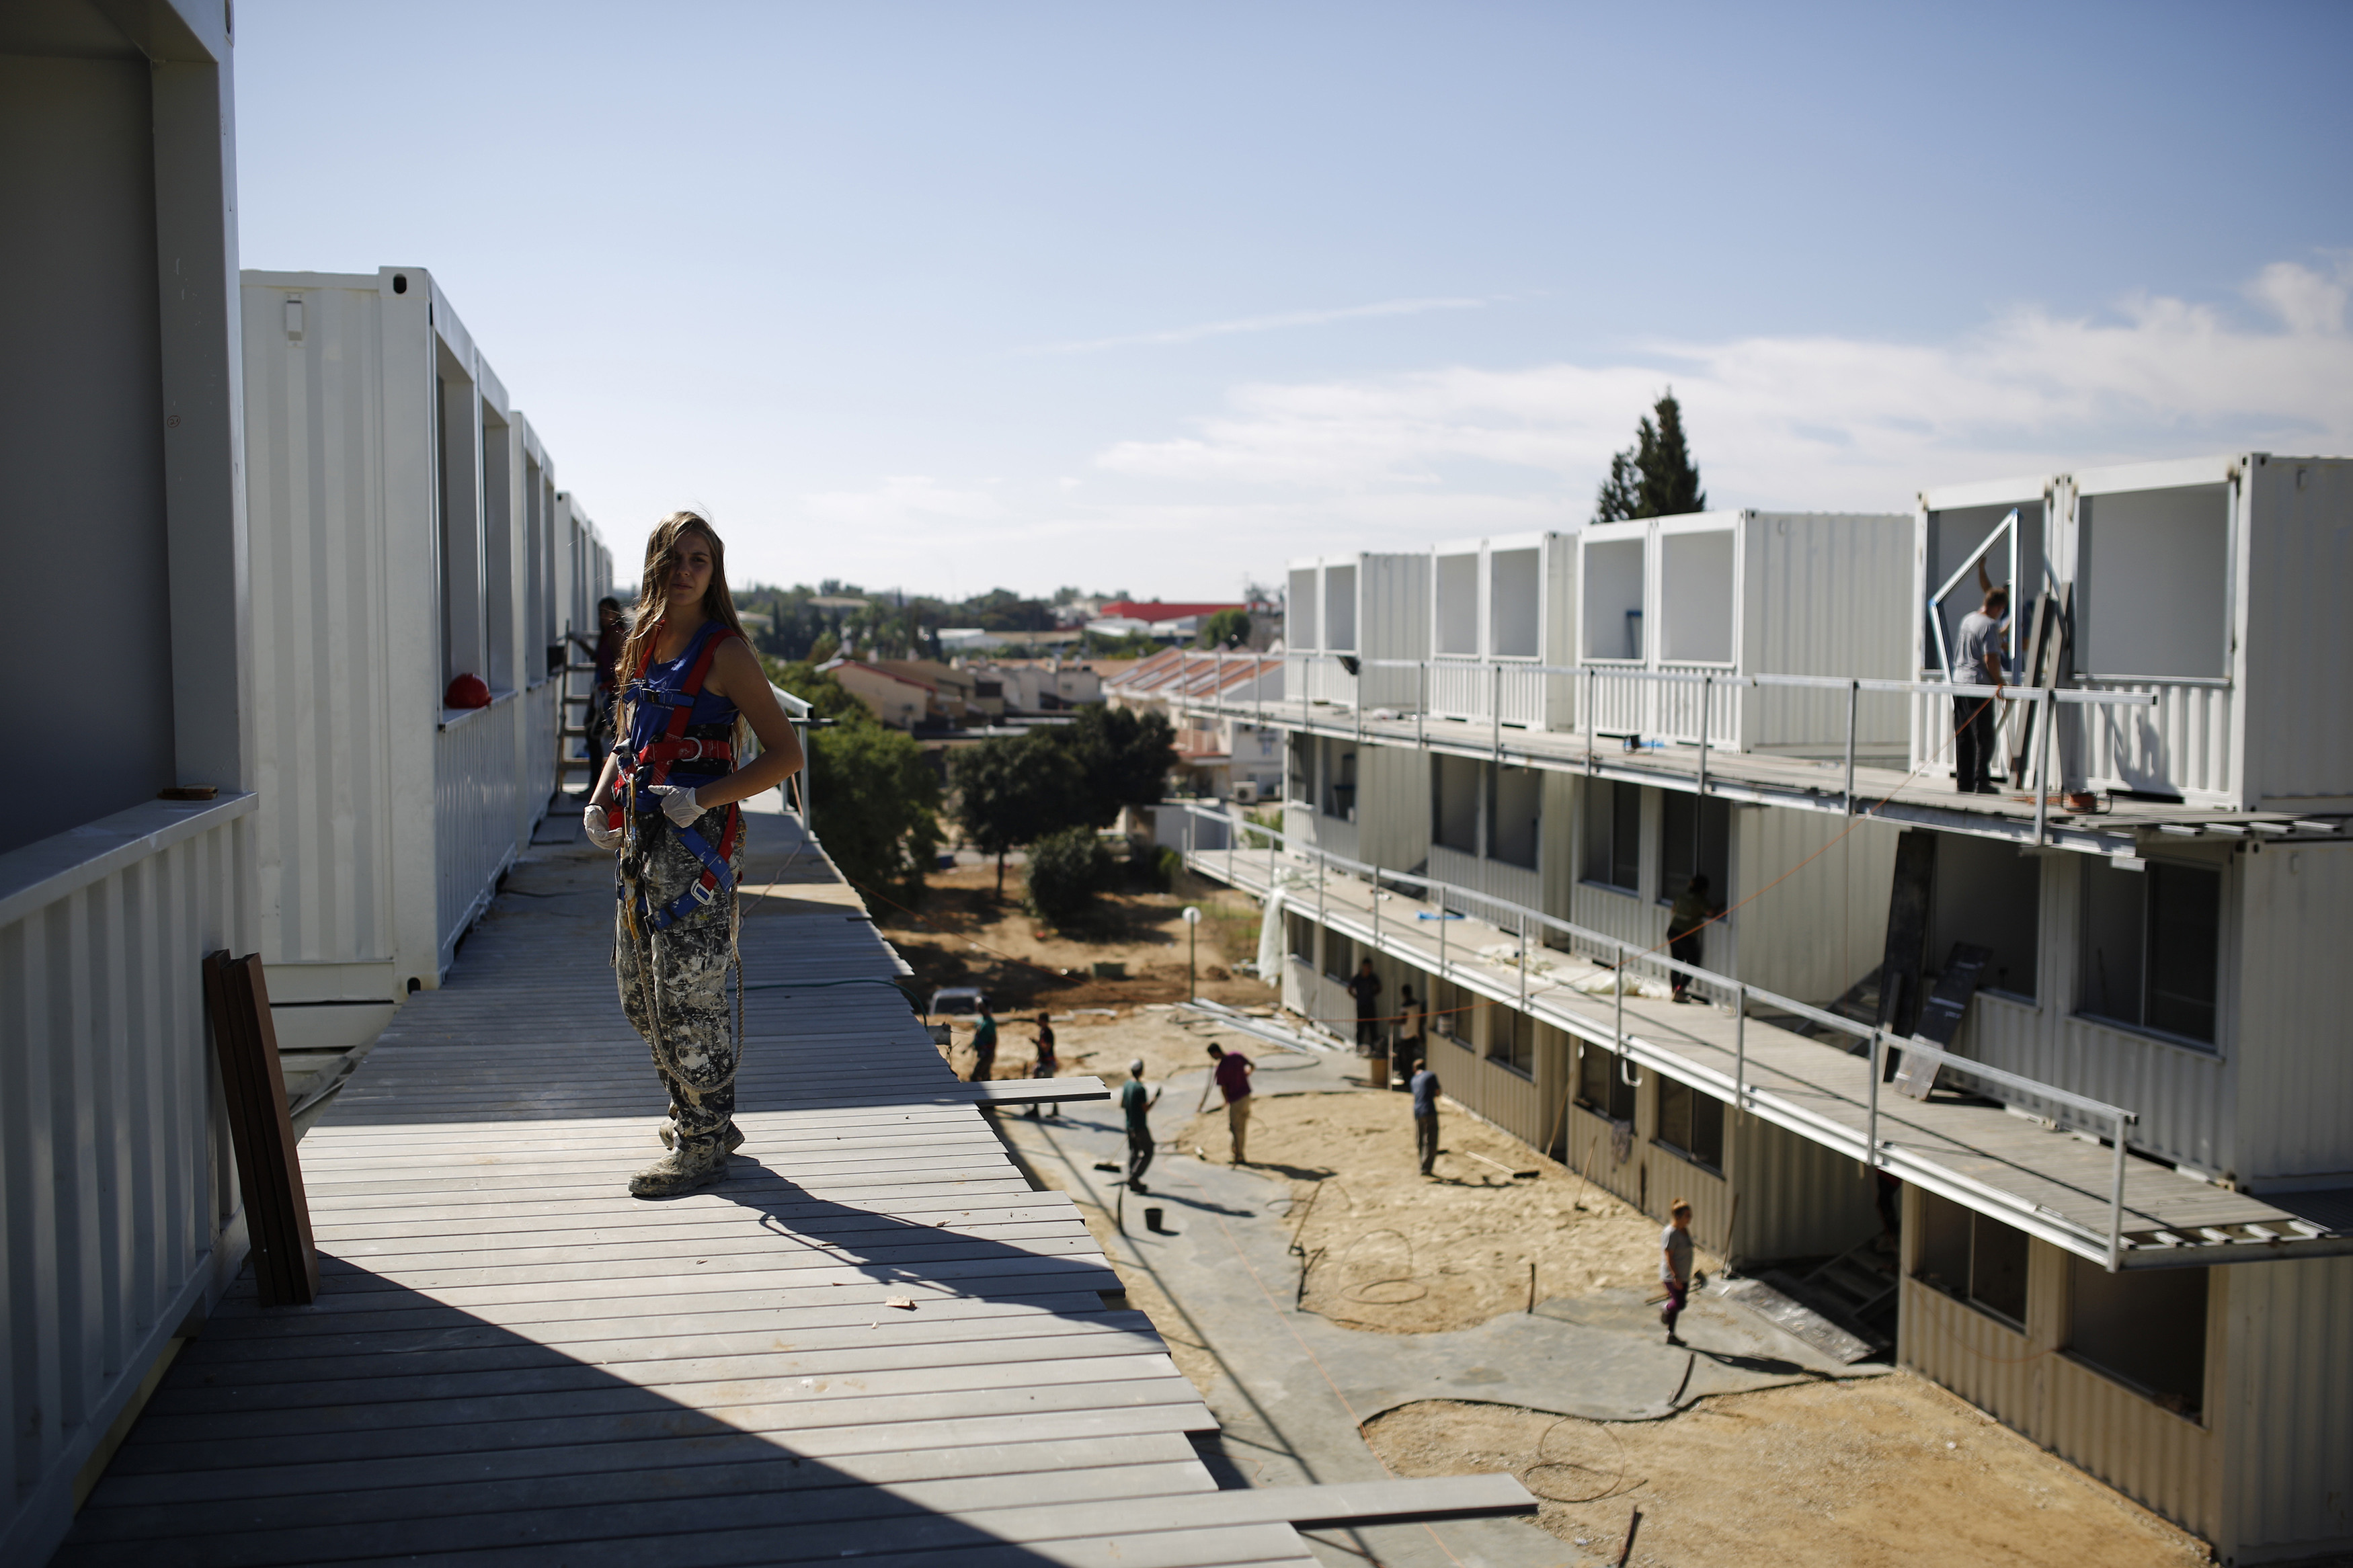 An Israeli student, who is a member of the Ayalim NGO, works at a construction site where recycled shipping containers are used to build accommodation for students in the southern Israeli town of Sderot (Reuters/Amir Cohen)